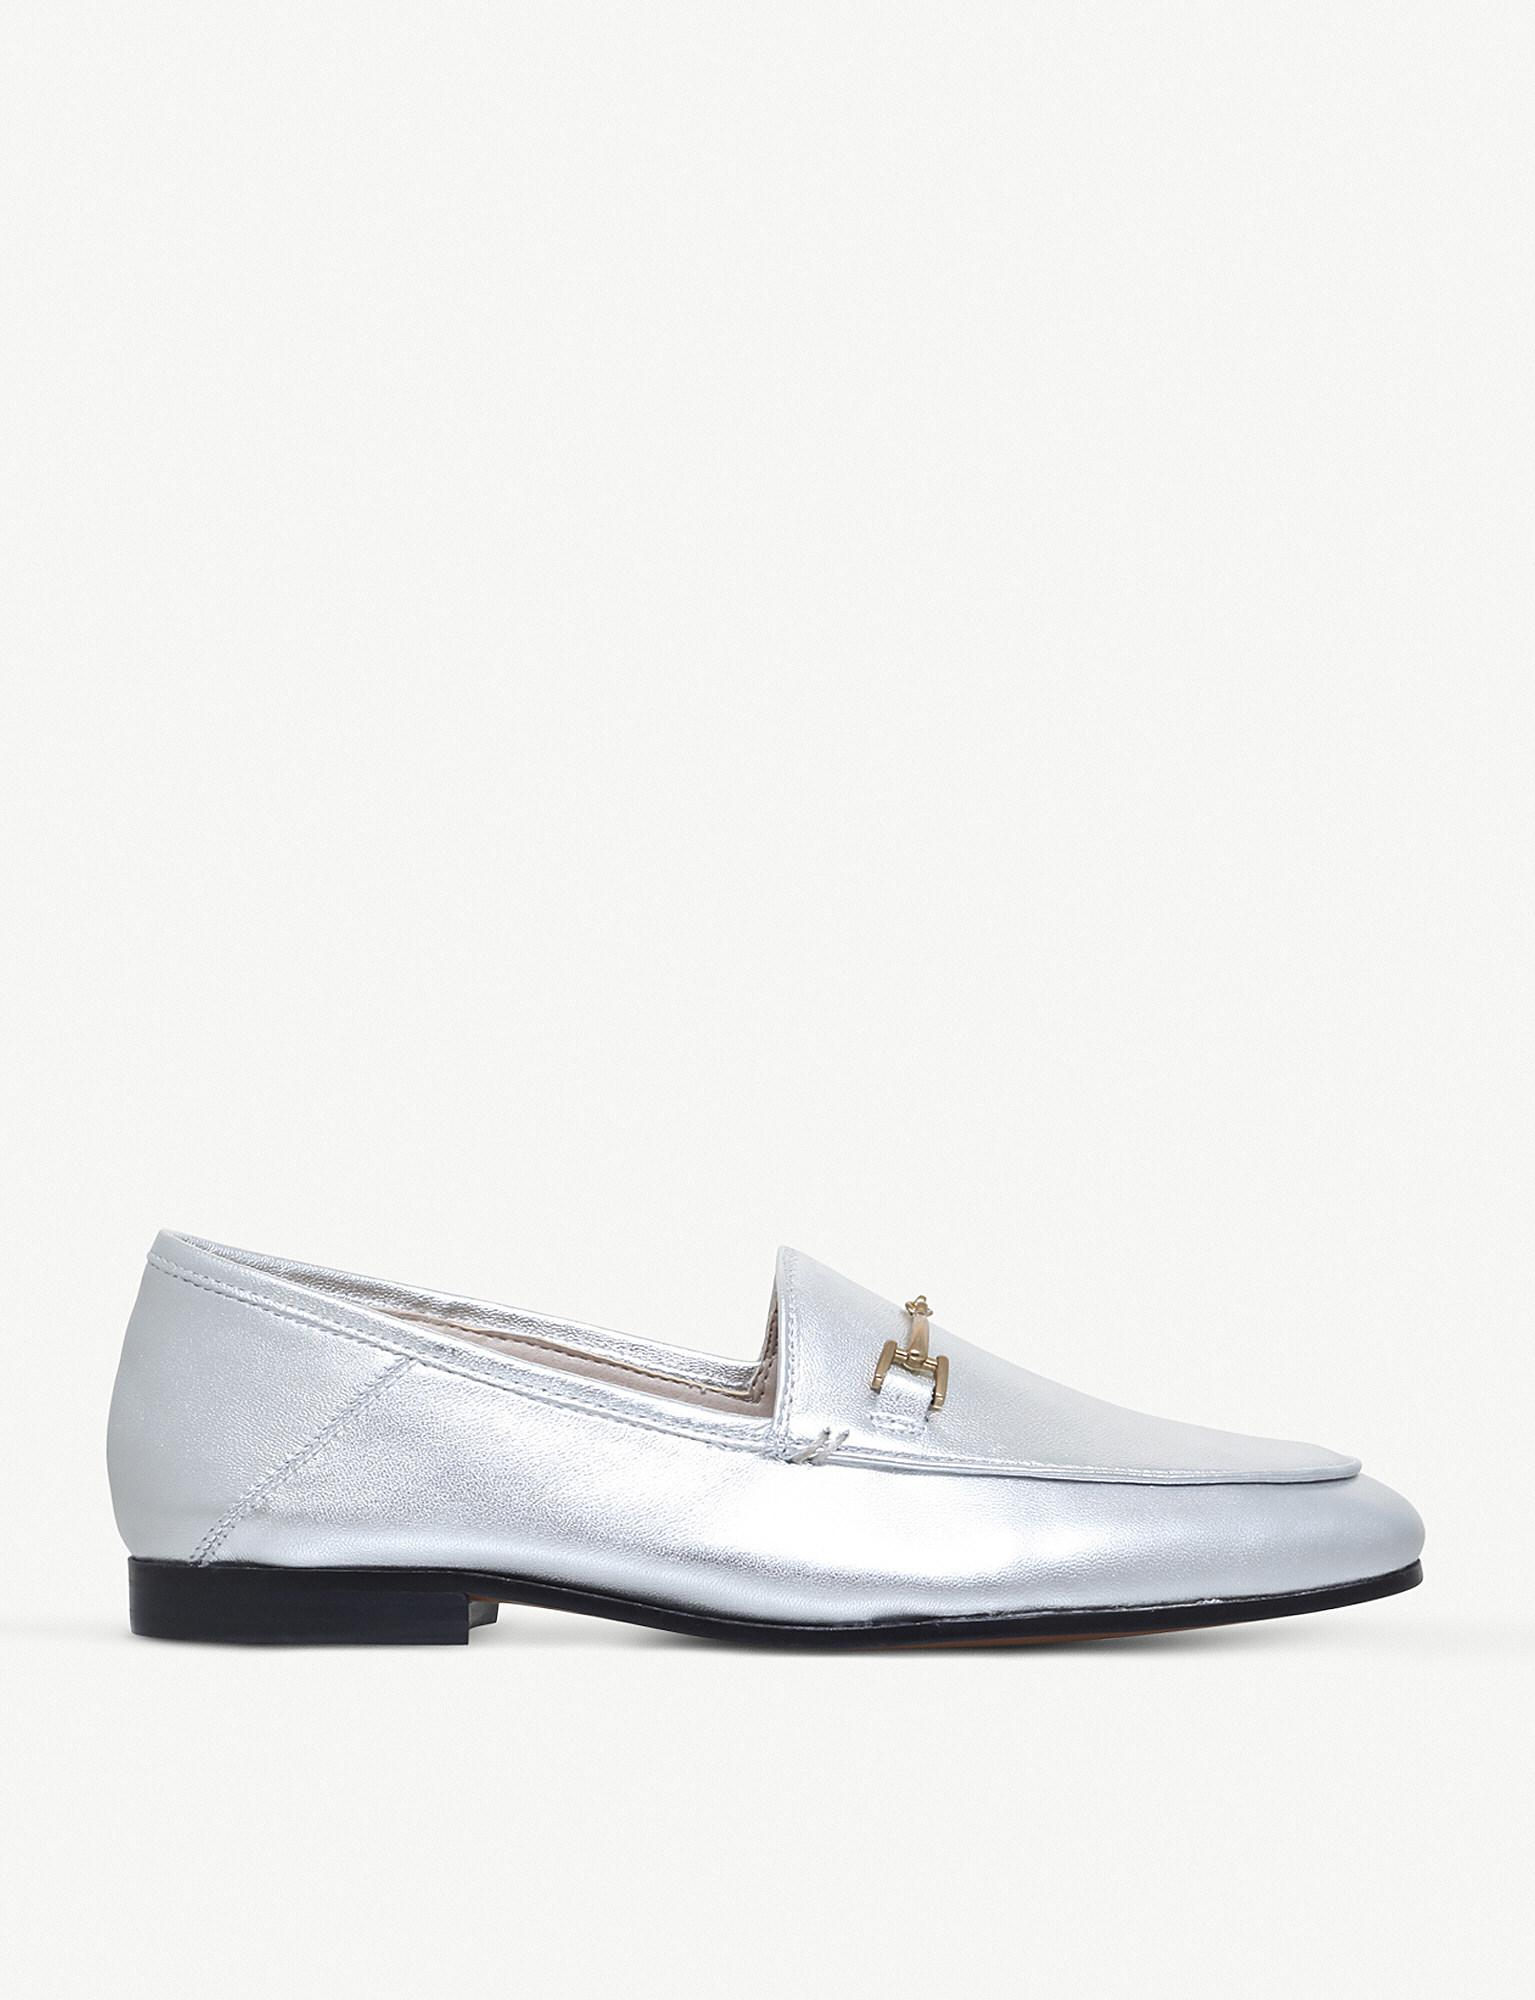 Sam Edelman Loraine Metallic Glitter Loafers kouu5